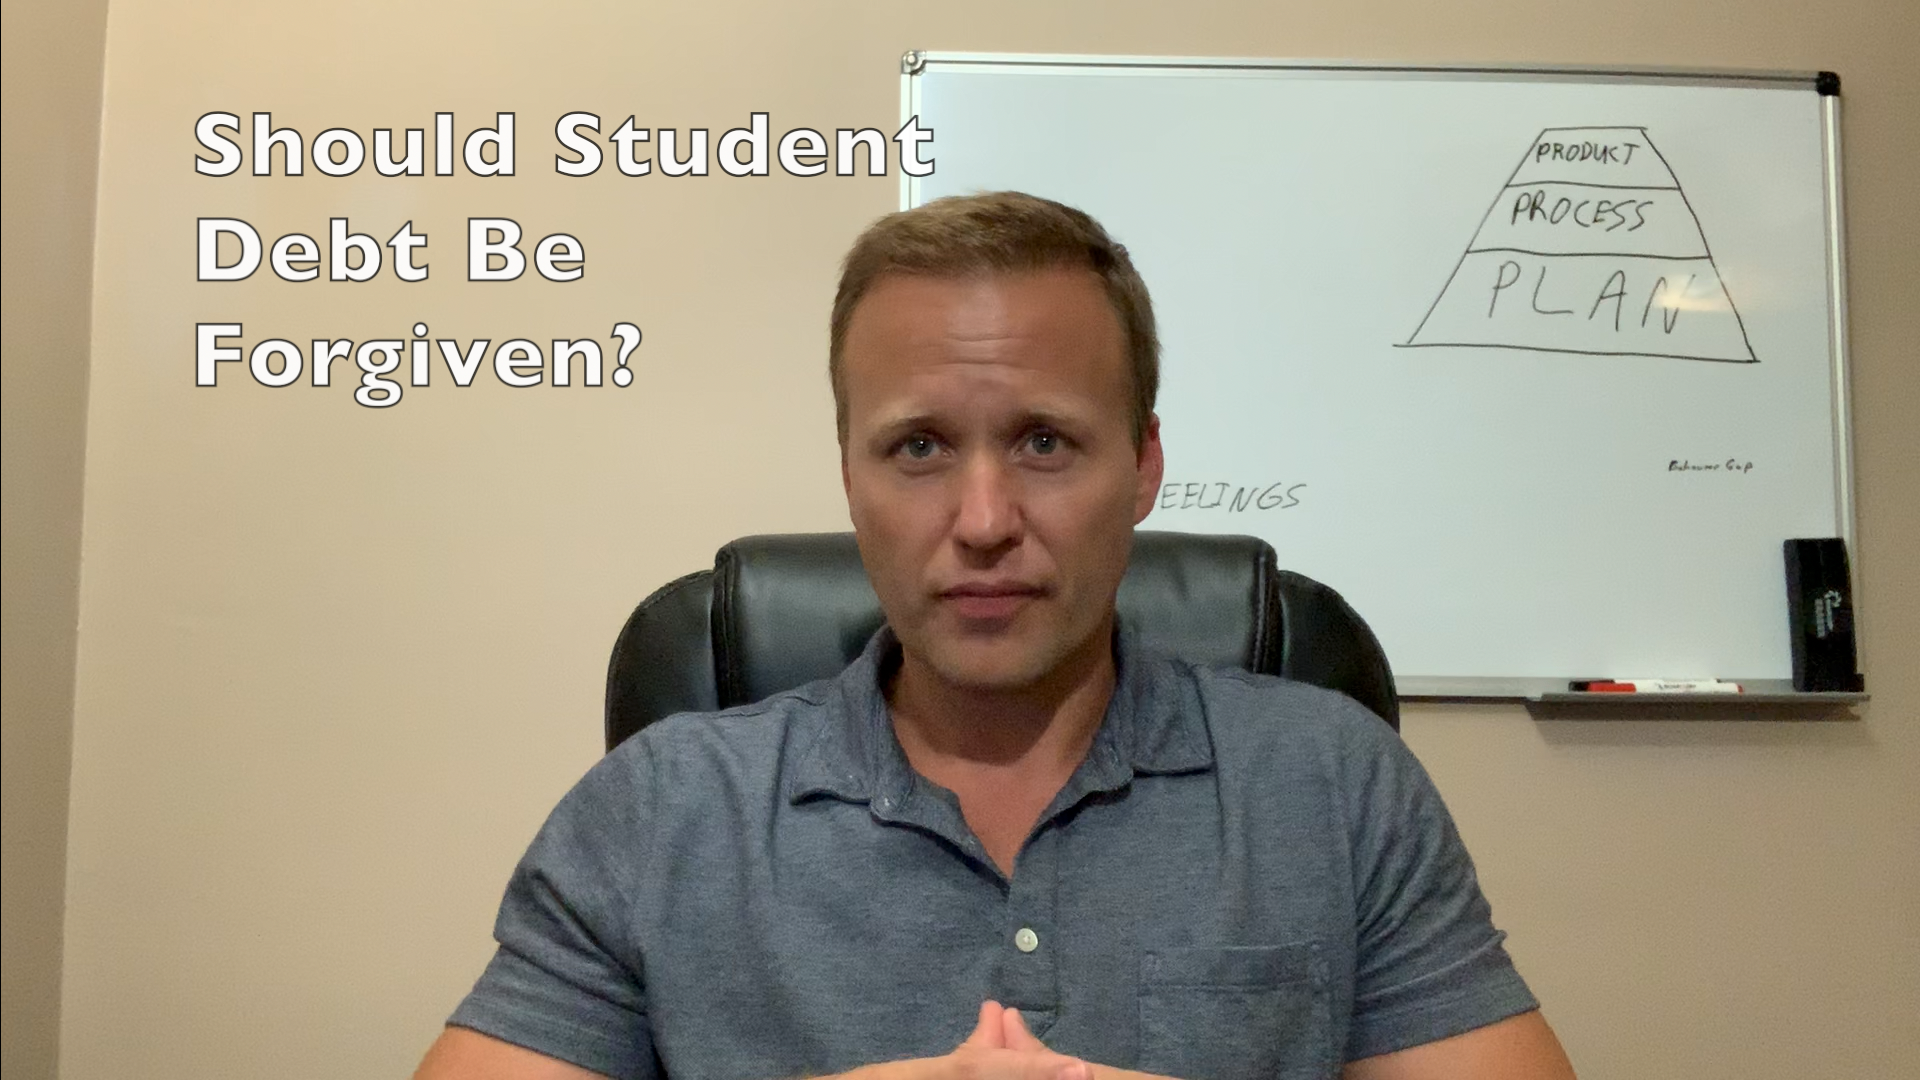 Student Debt: Should It Be Forgiven? Thumbnail